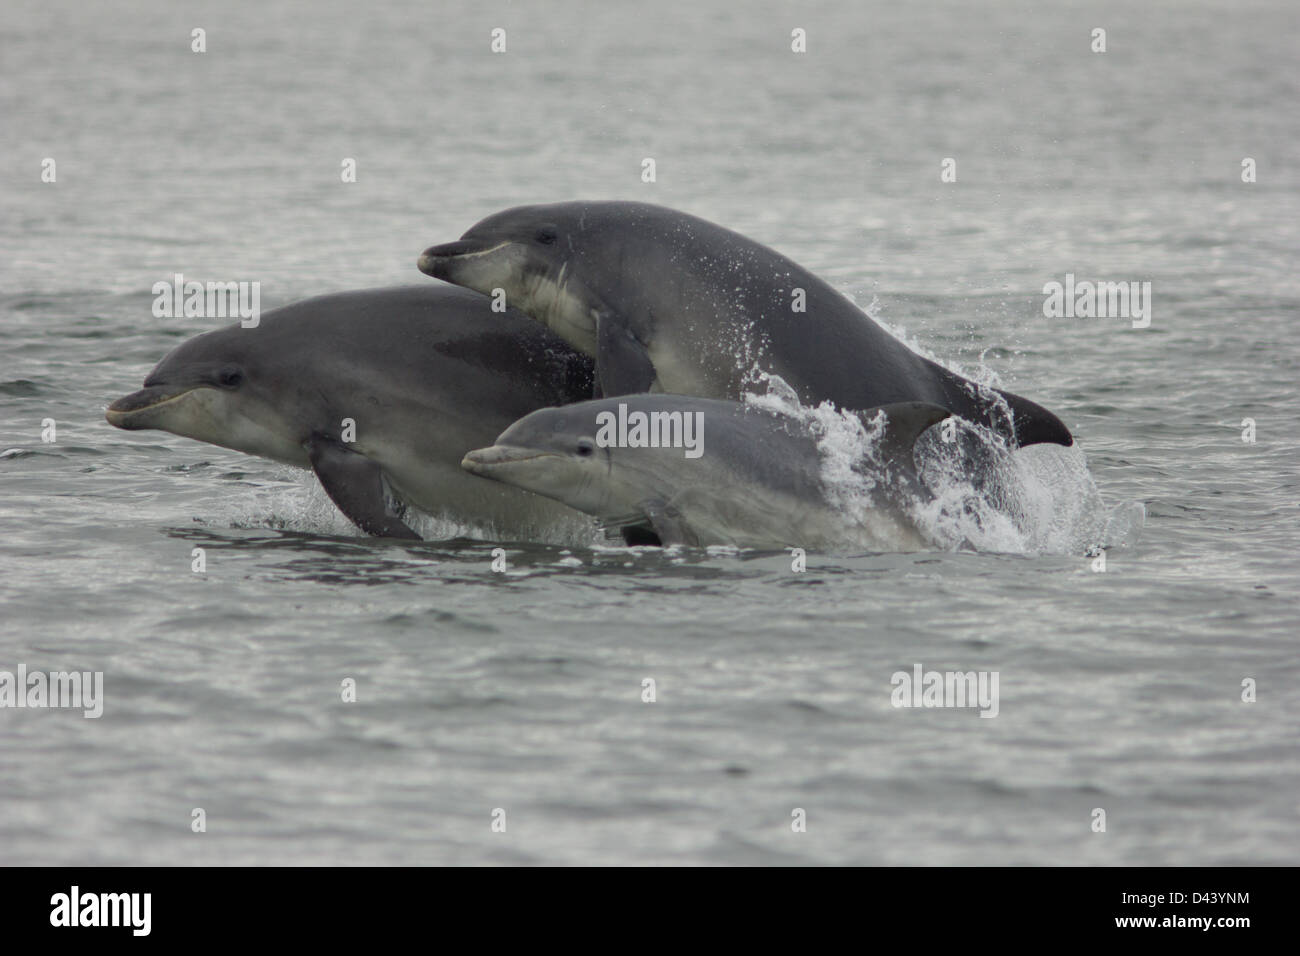 Bottlenose Dolphins Jumping at Chanonry Point. - Stock Image